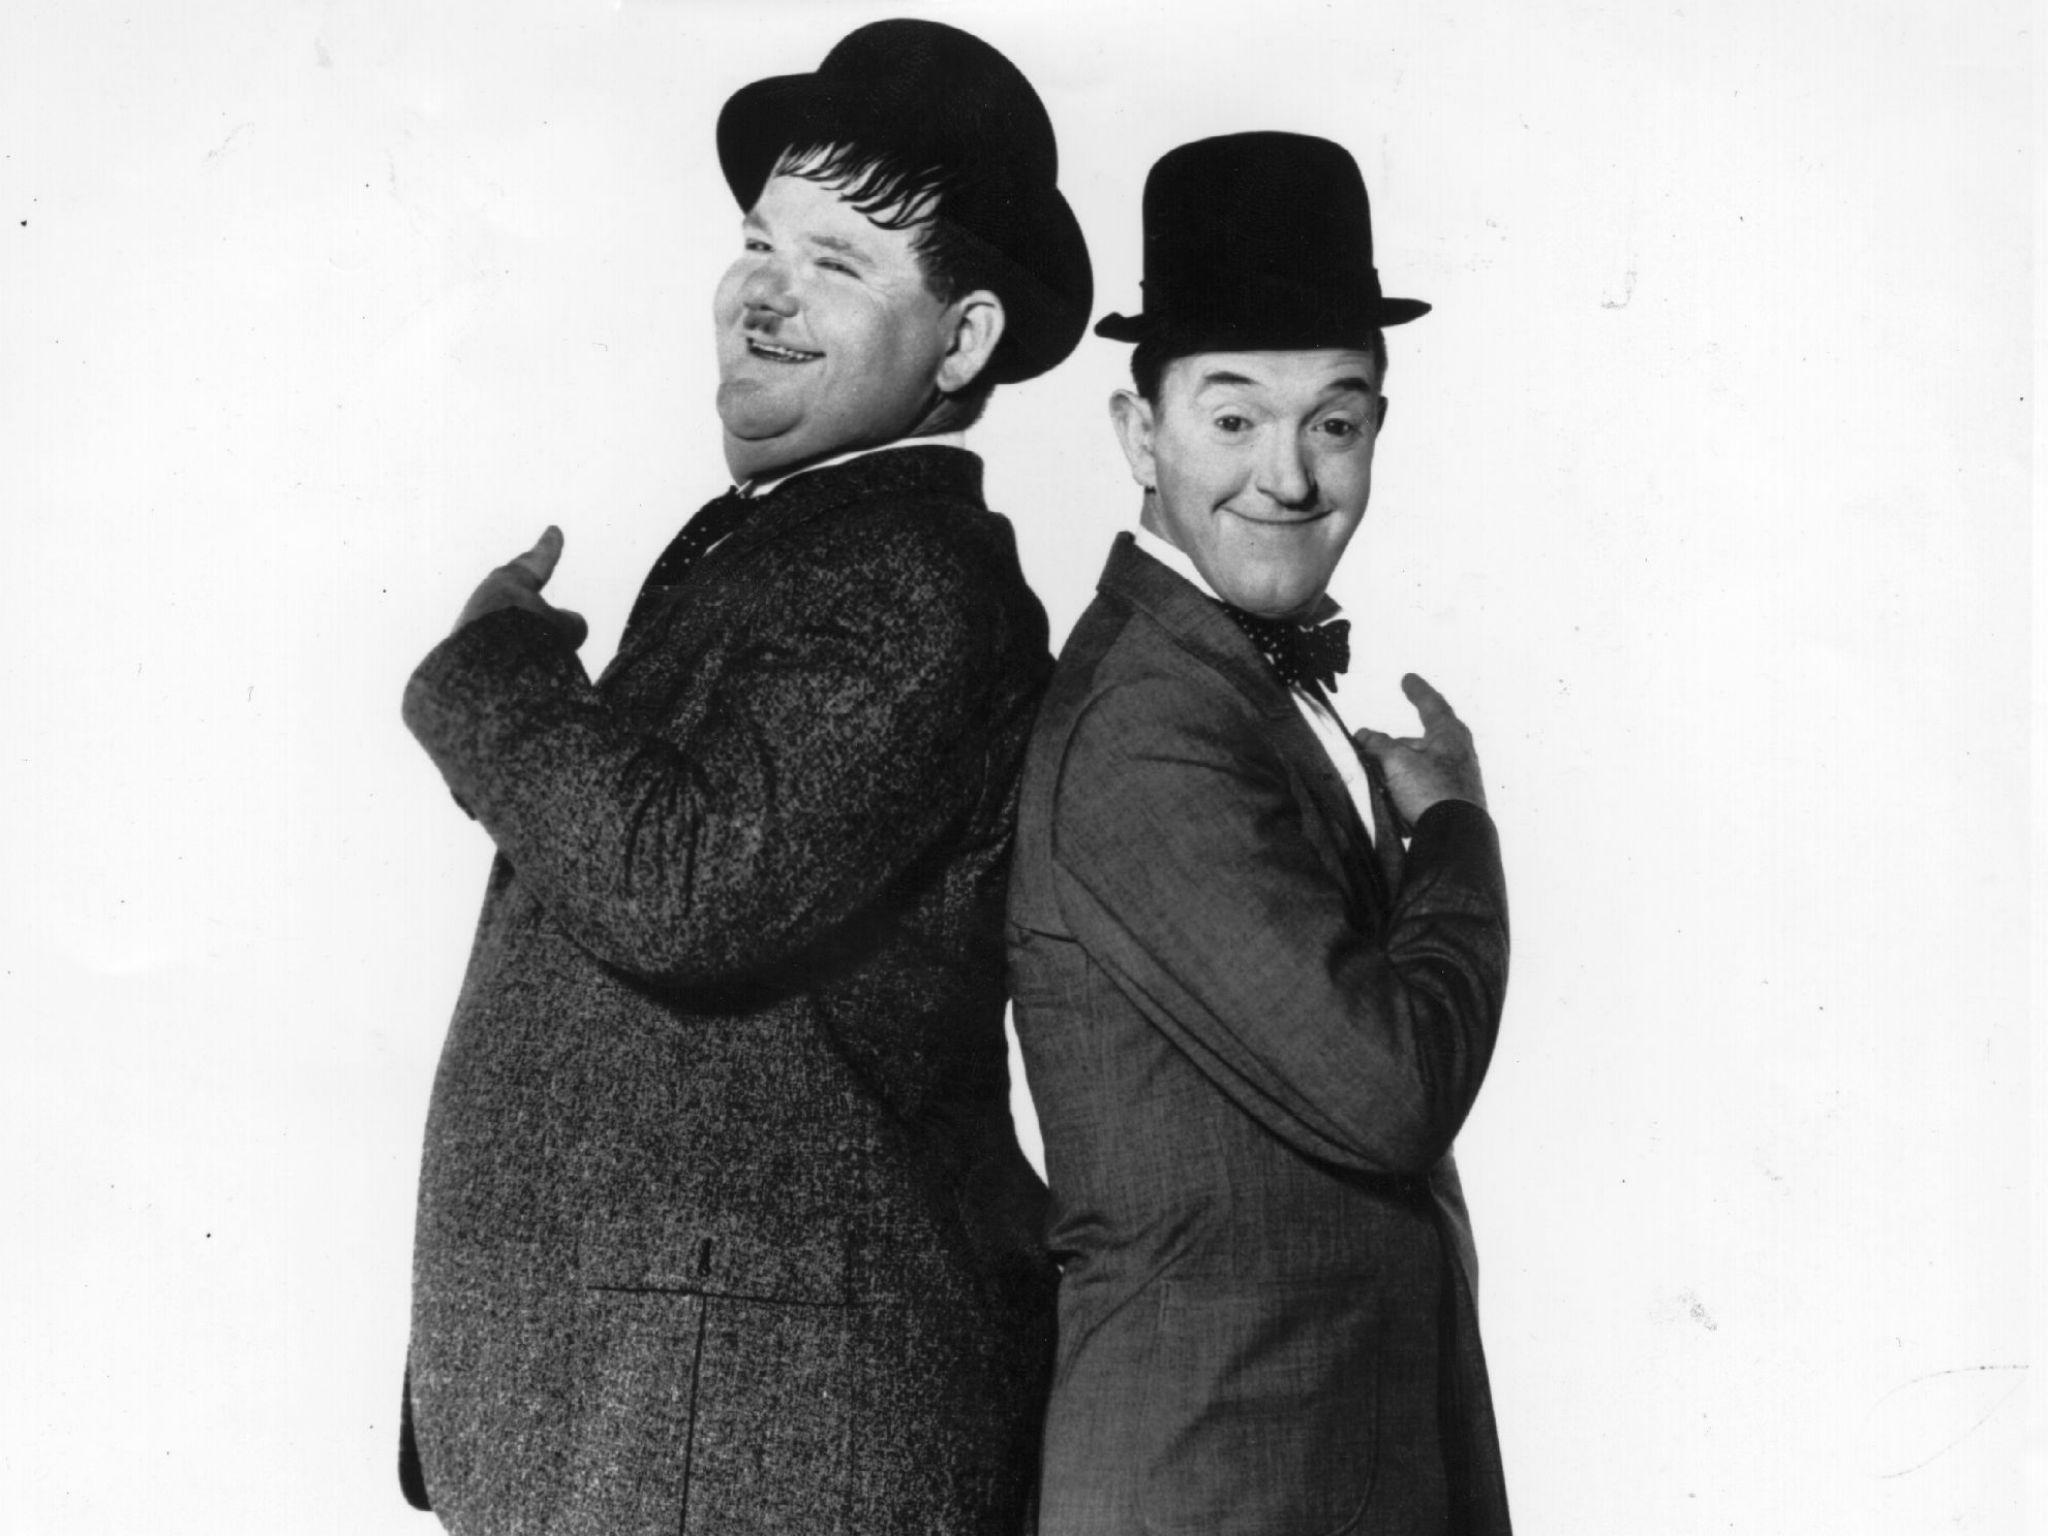 Steve Coogan and John C Reilly to star as Laurel and Hardy in new ...